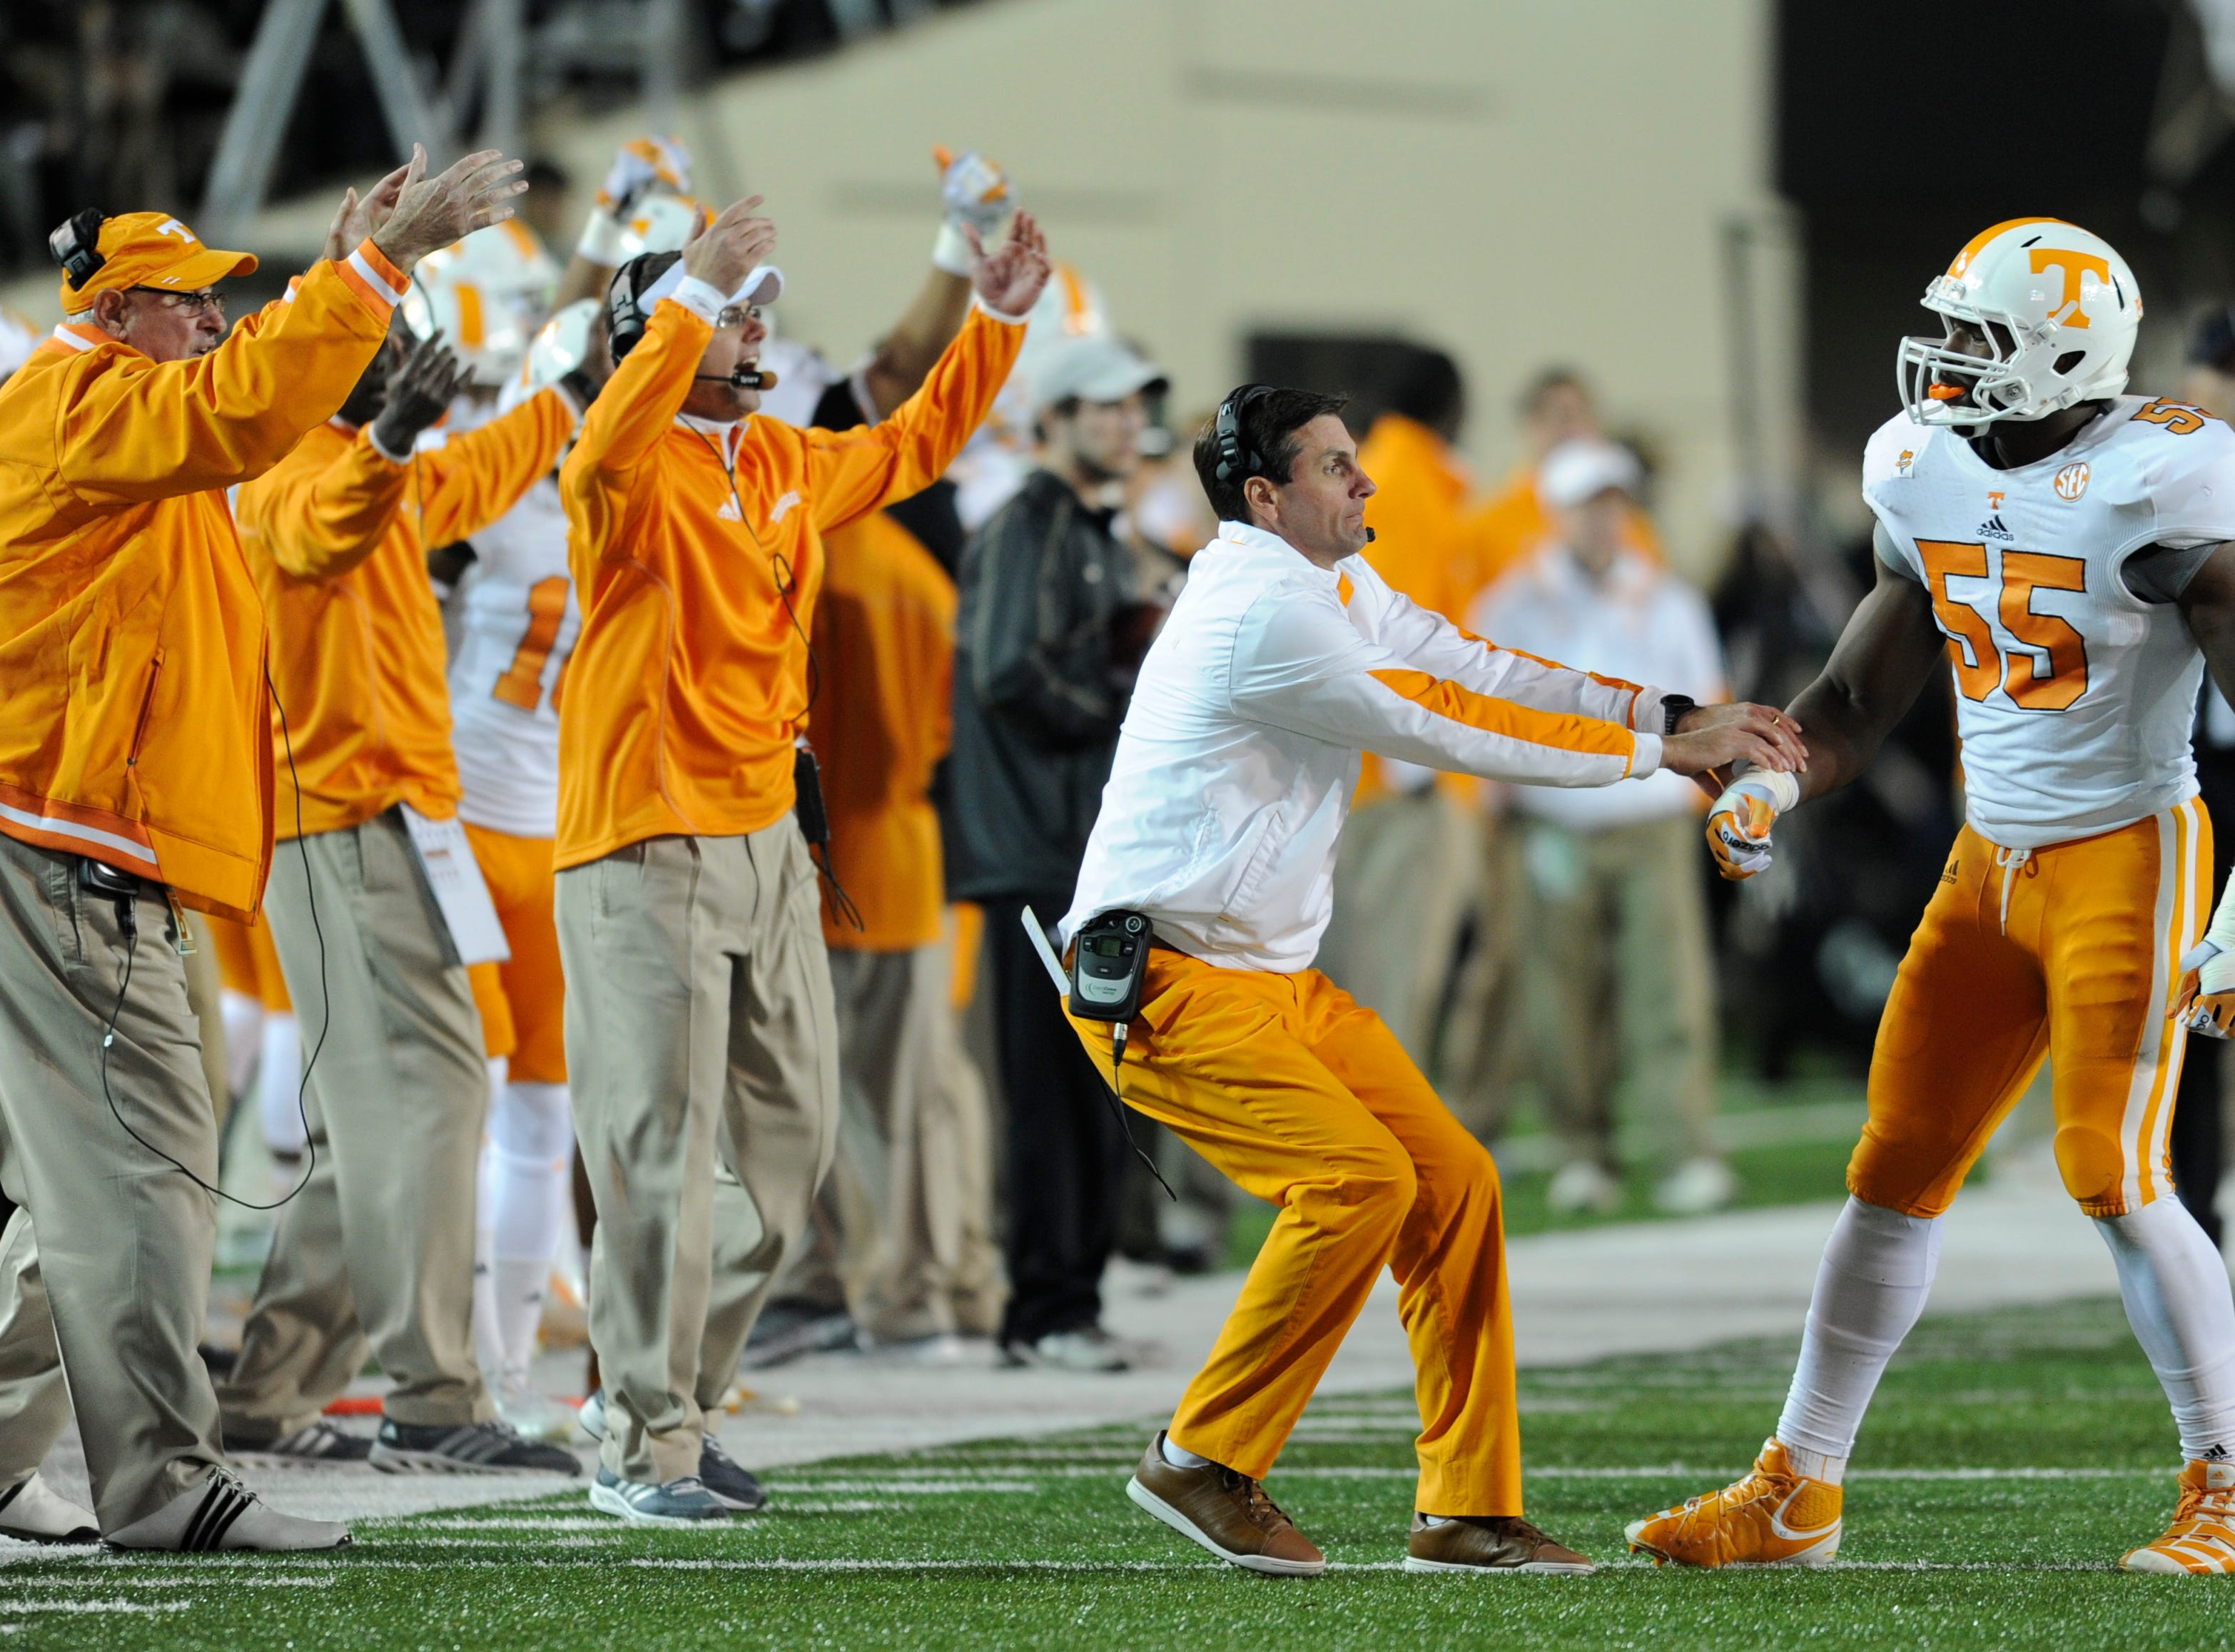 Tennessee head coach Derek Dooley pulls linebacker Jacques Smith off the field during the game against Vanderbilt at Vanderbilt Stadium in Nashville on Saturday, Nov. 17, 2012.